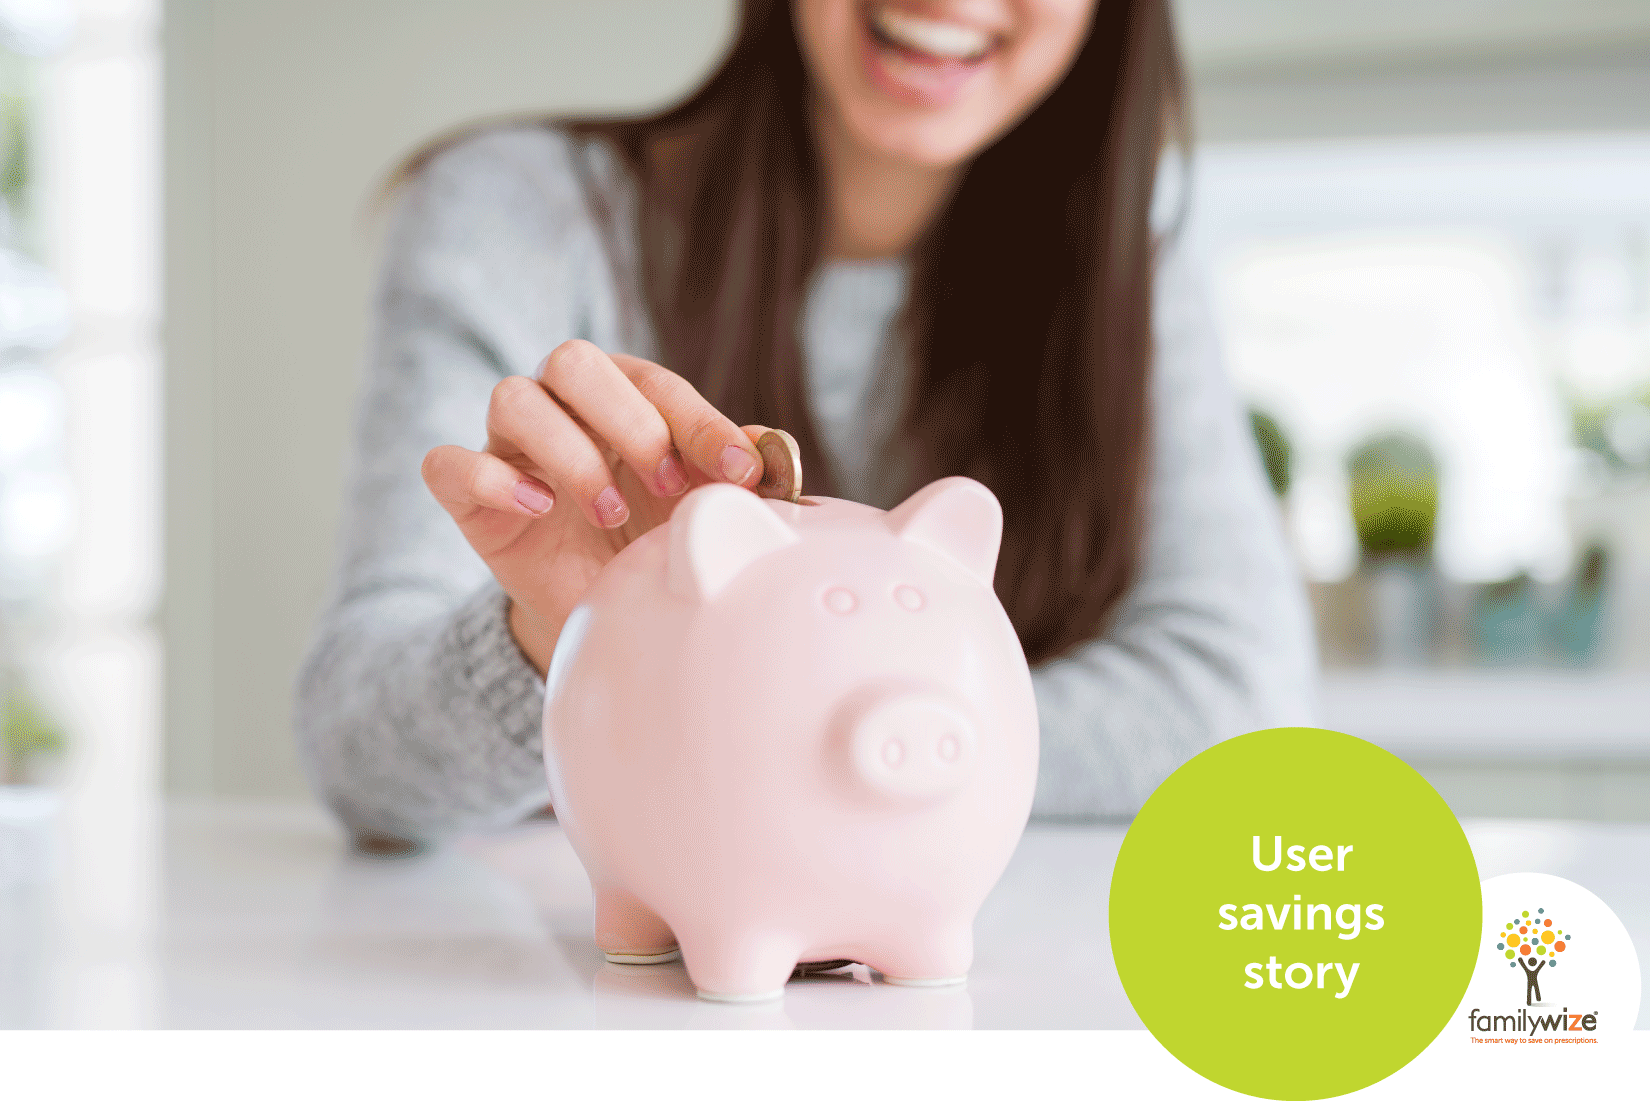 User Savings Story